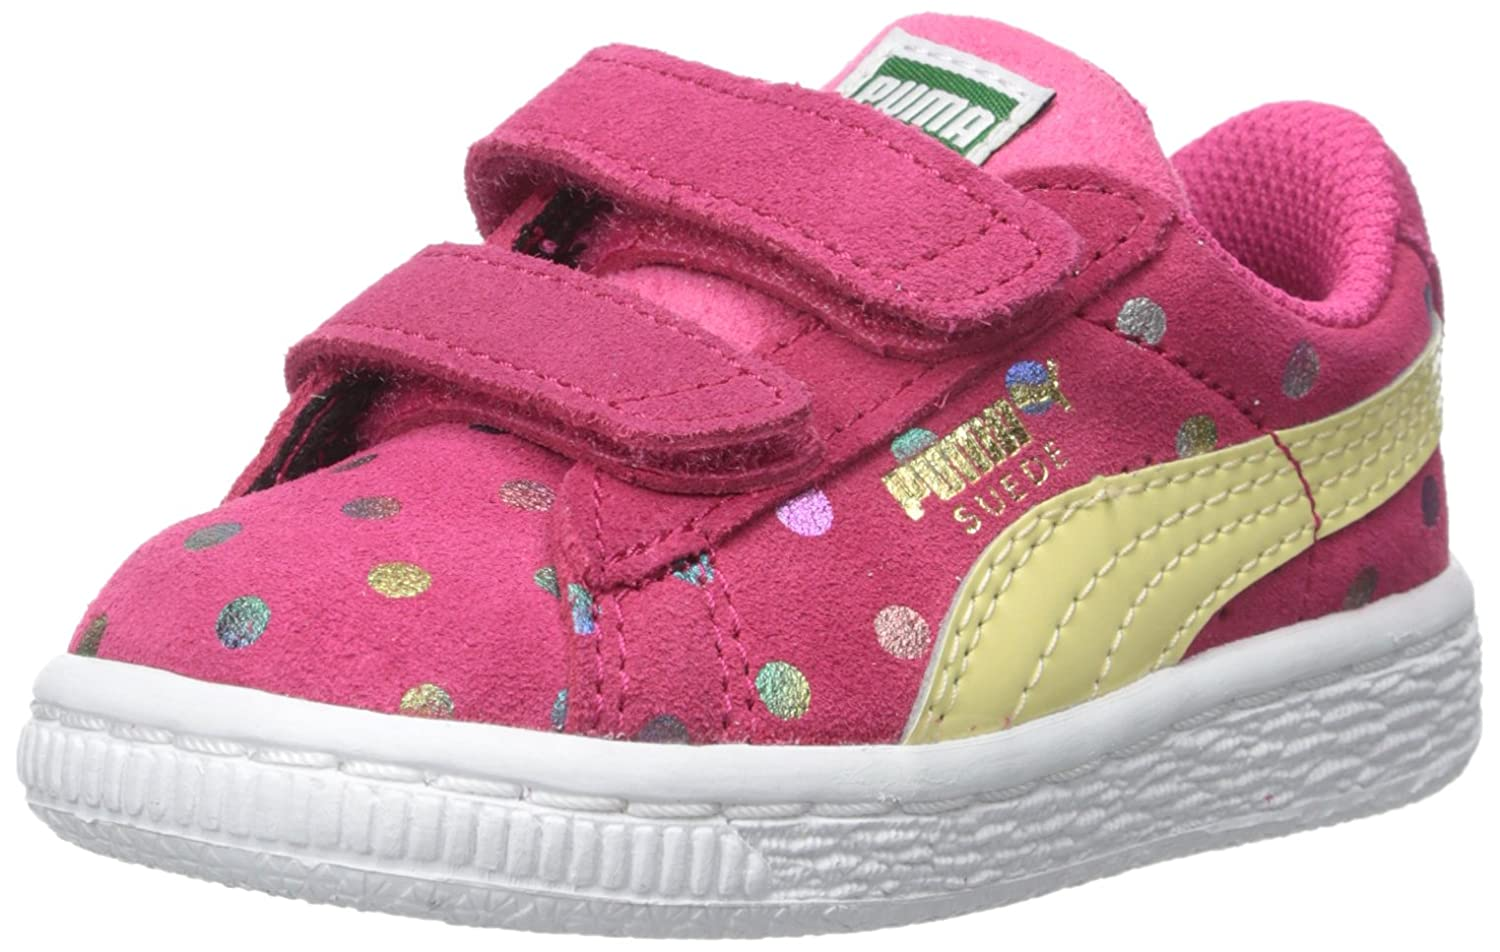 Infant//Toddler//Little Kid PUMA Suede Dotfetti V Kids Slip-On Shoe